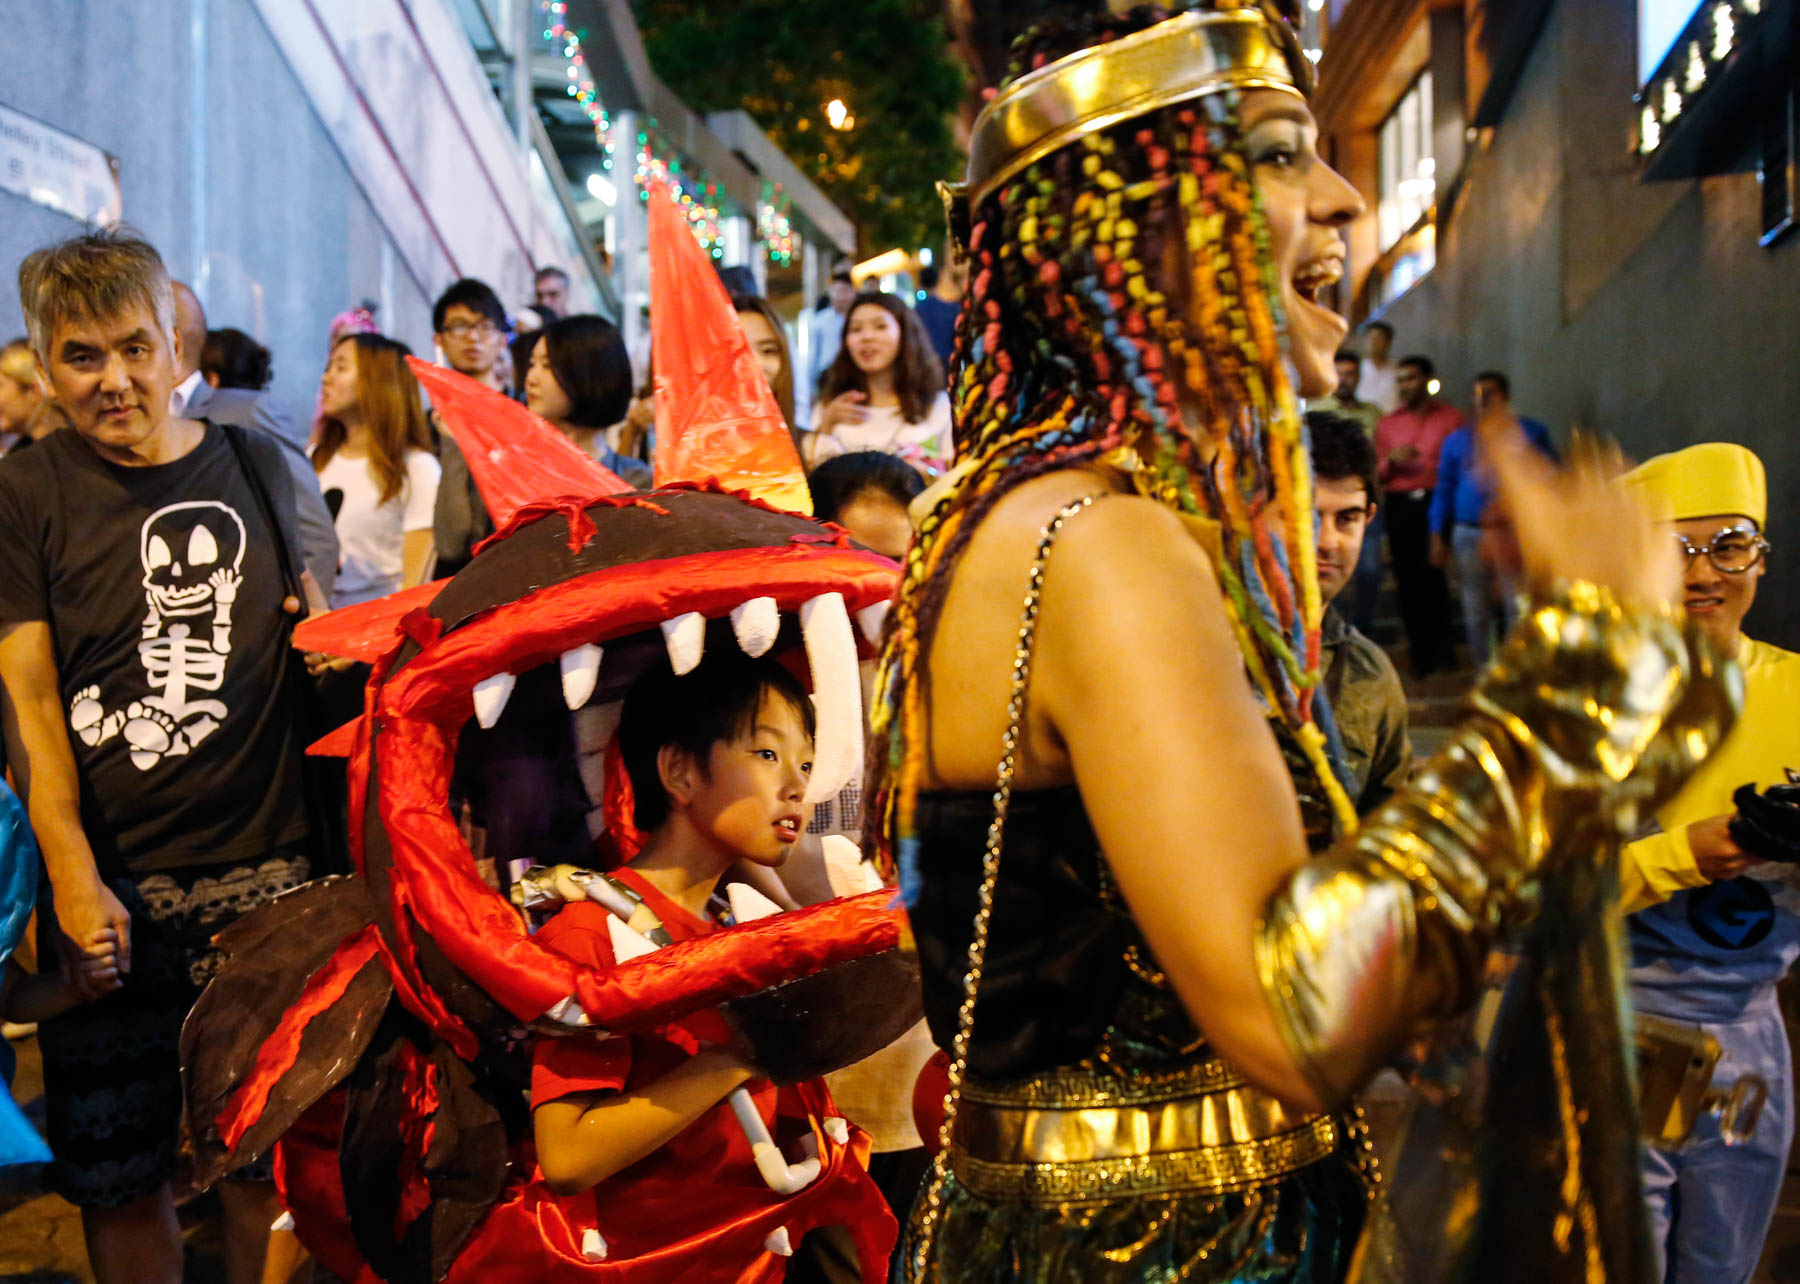 Crowd surrounding child dressed in dragon costume (© AP Images)